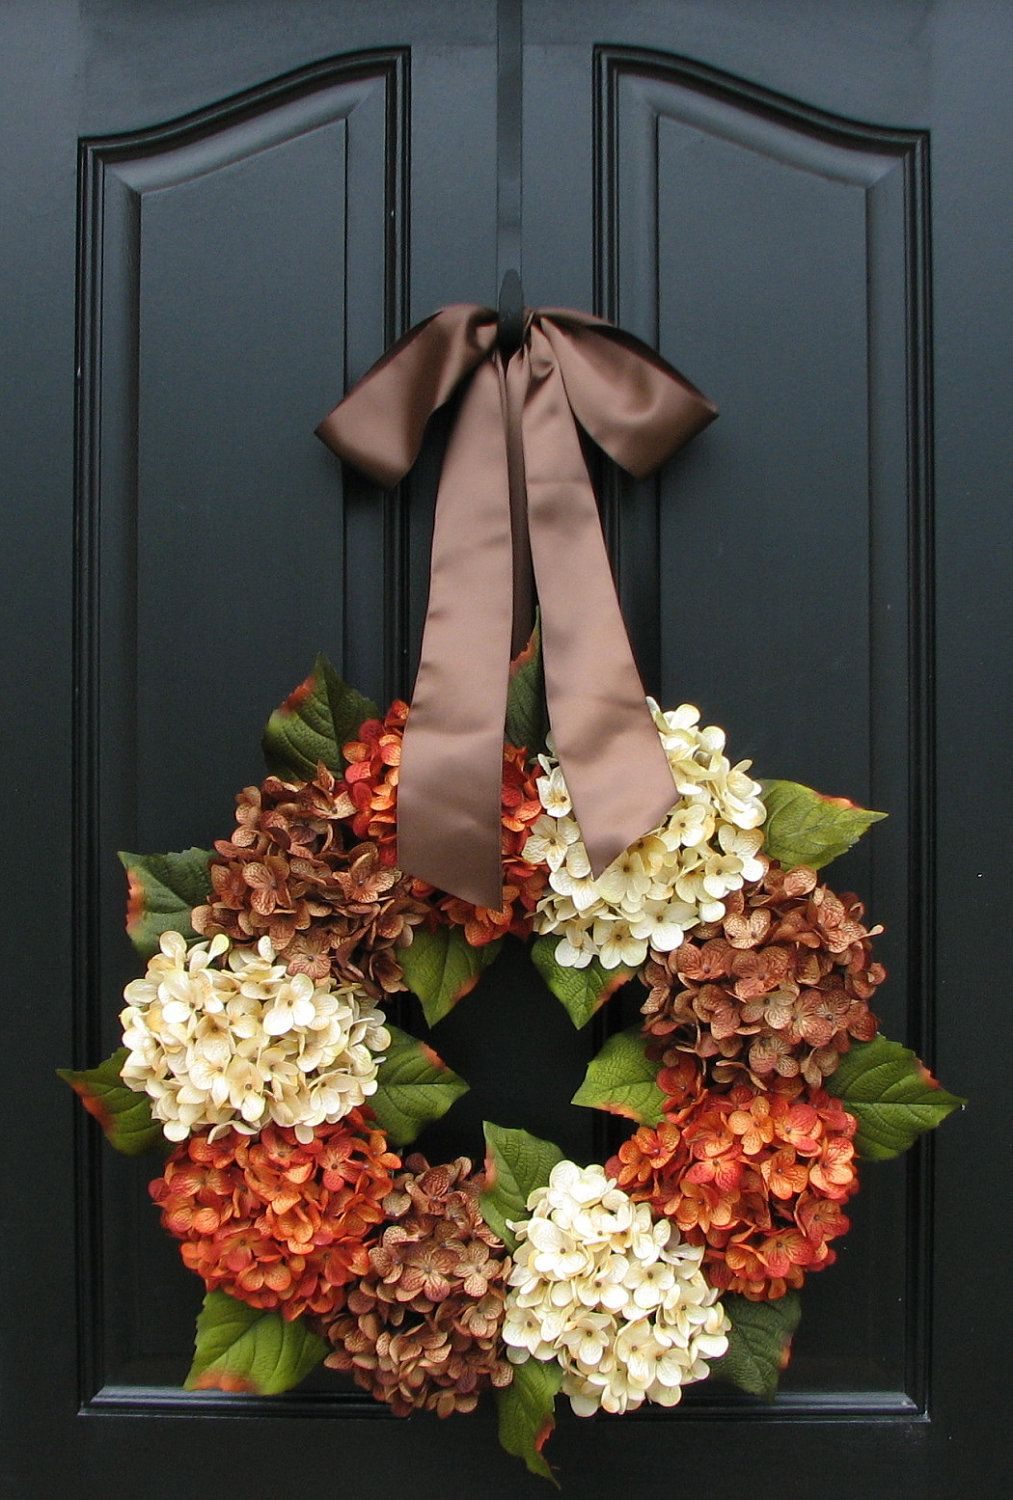 Fall Wreaths Wreaths Pinterest Wreaths, Autumn leaves falling - Front Door Halloween Decoration Ideas